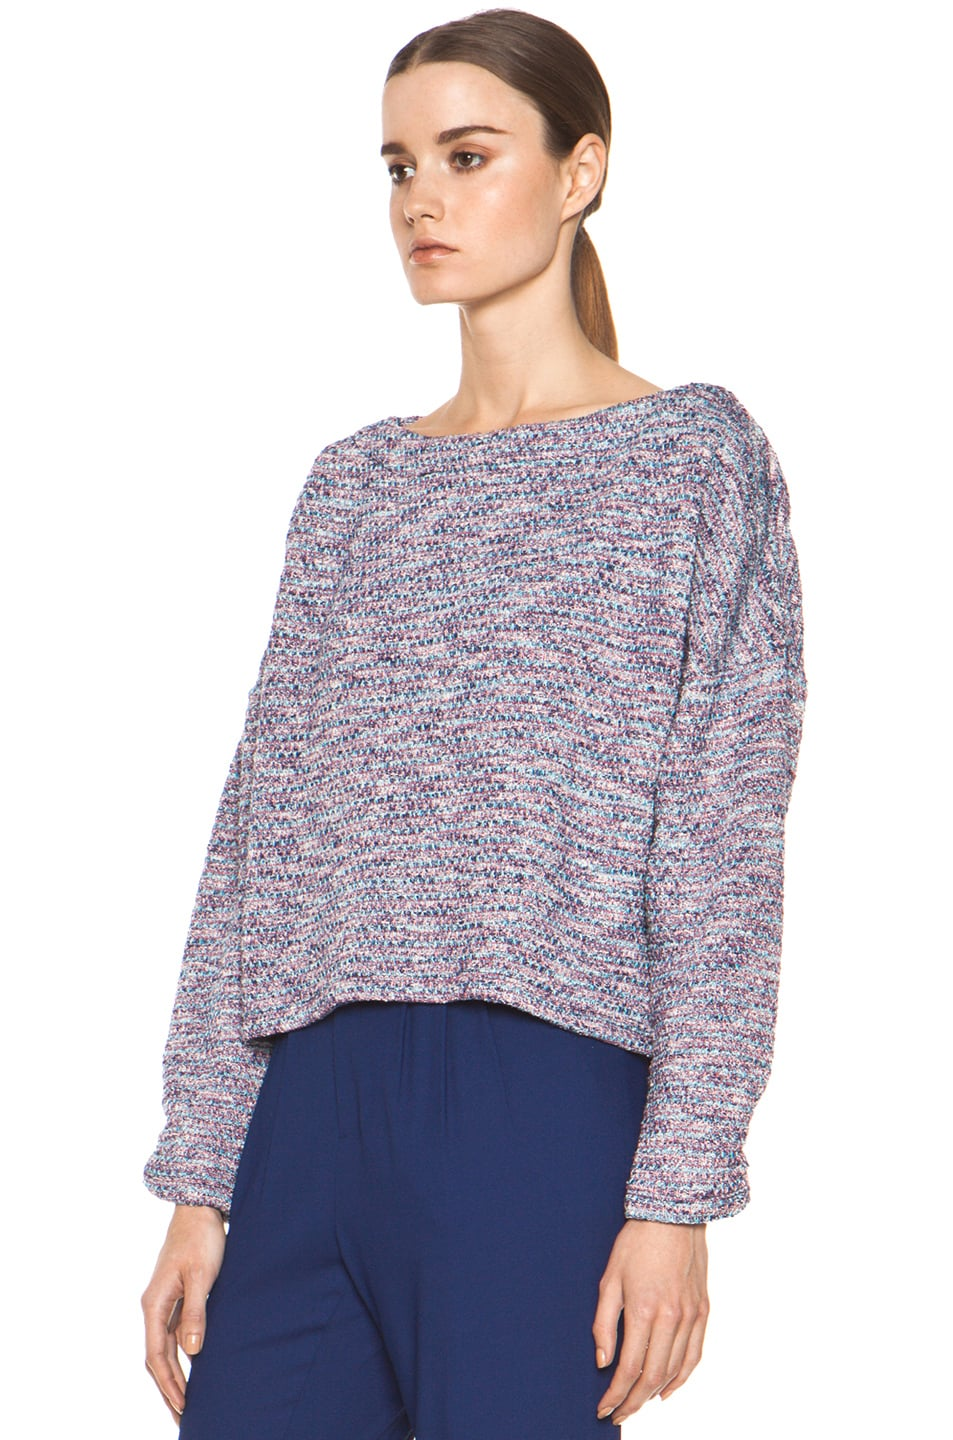 Image 3 of Girl. by Band of Outsiders Knit Tweed Sweater in Multi